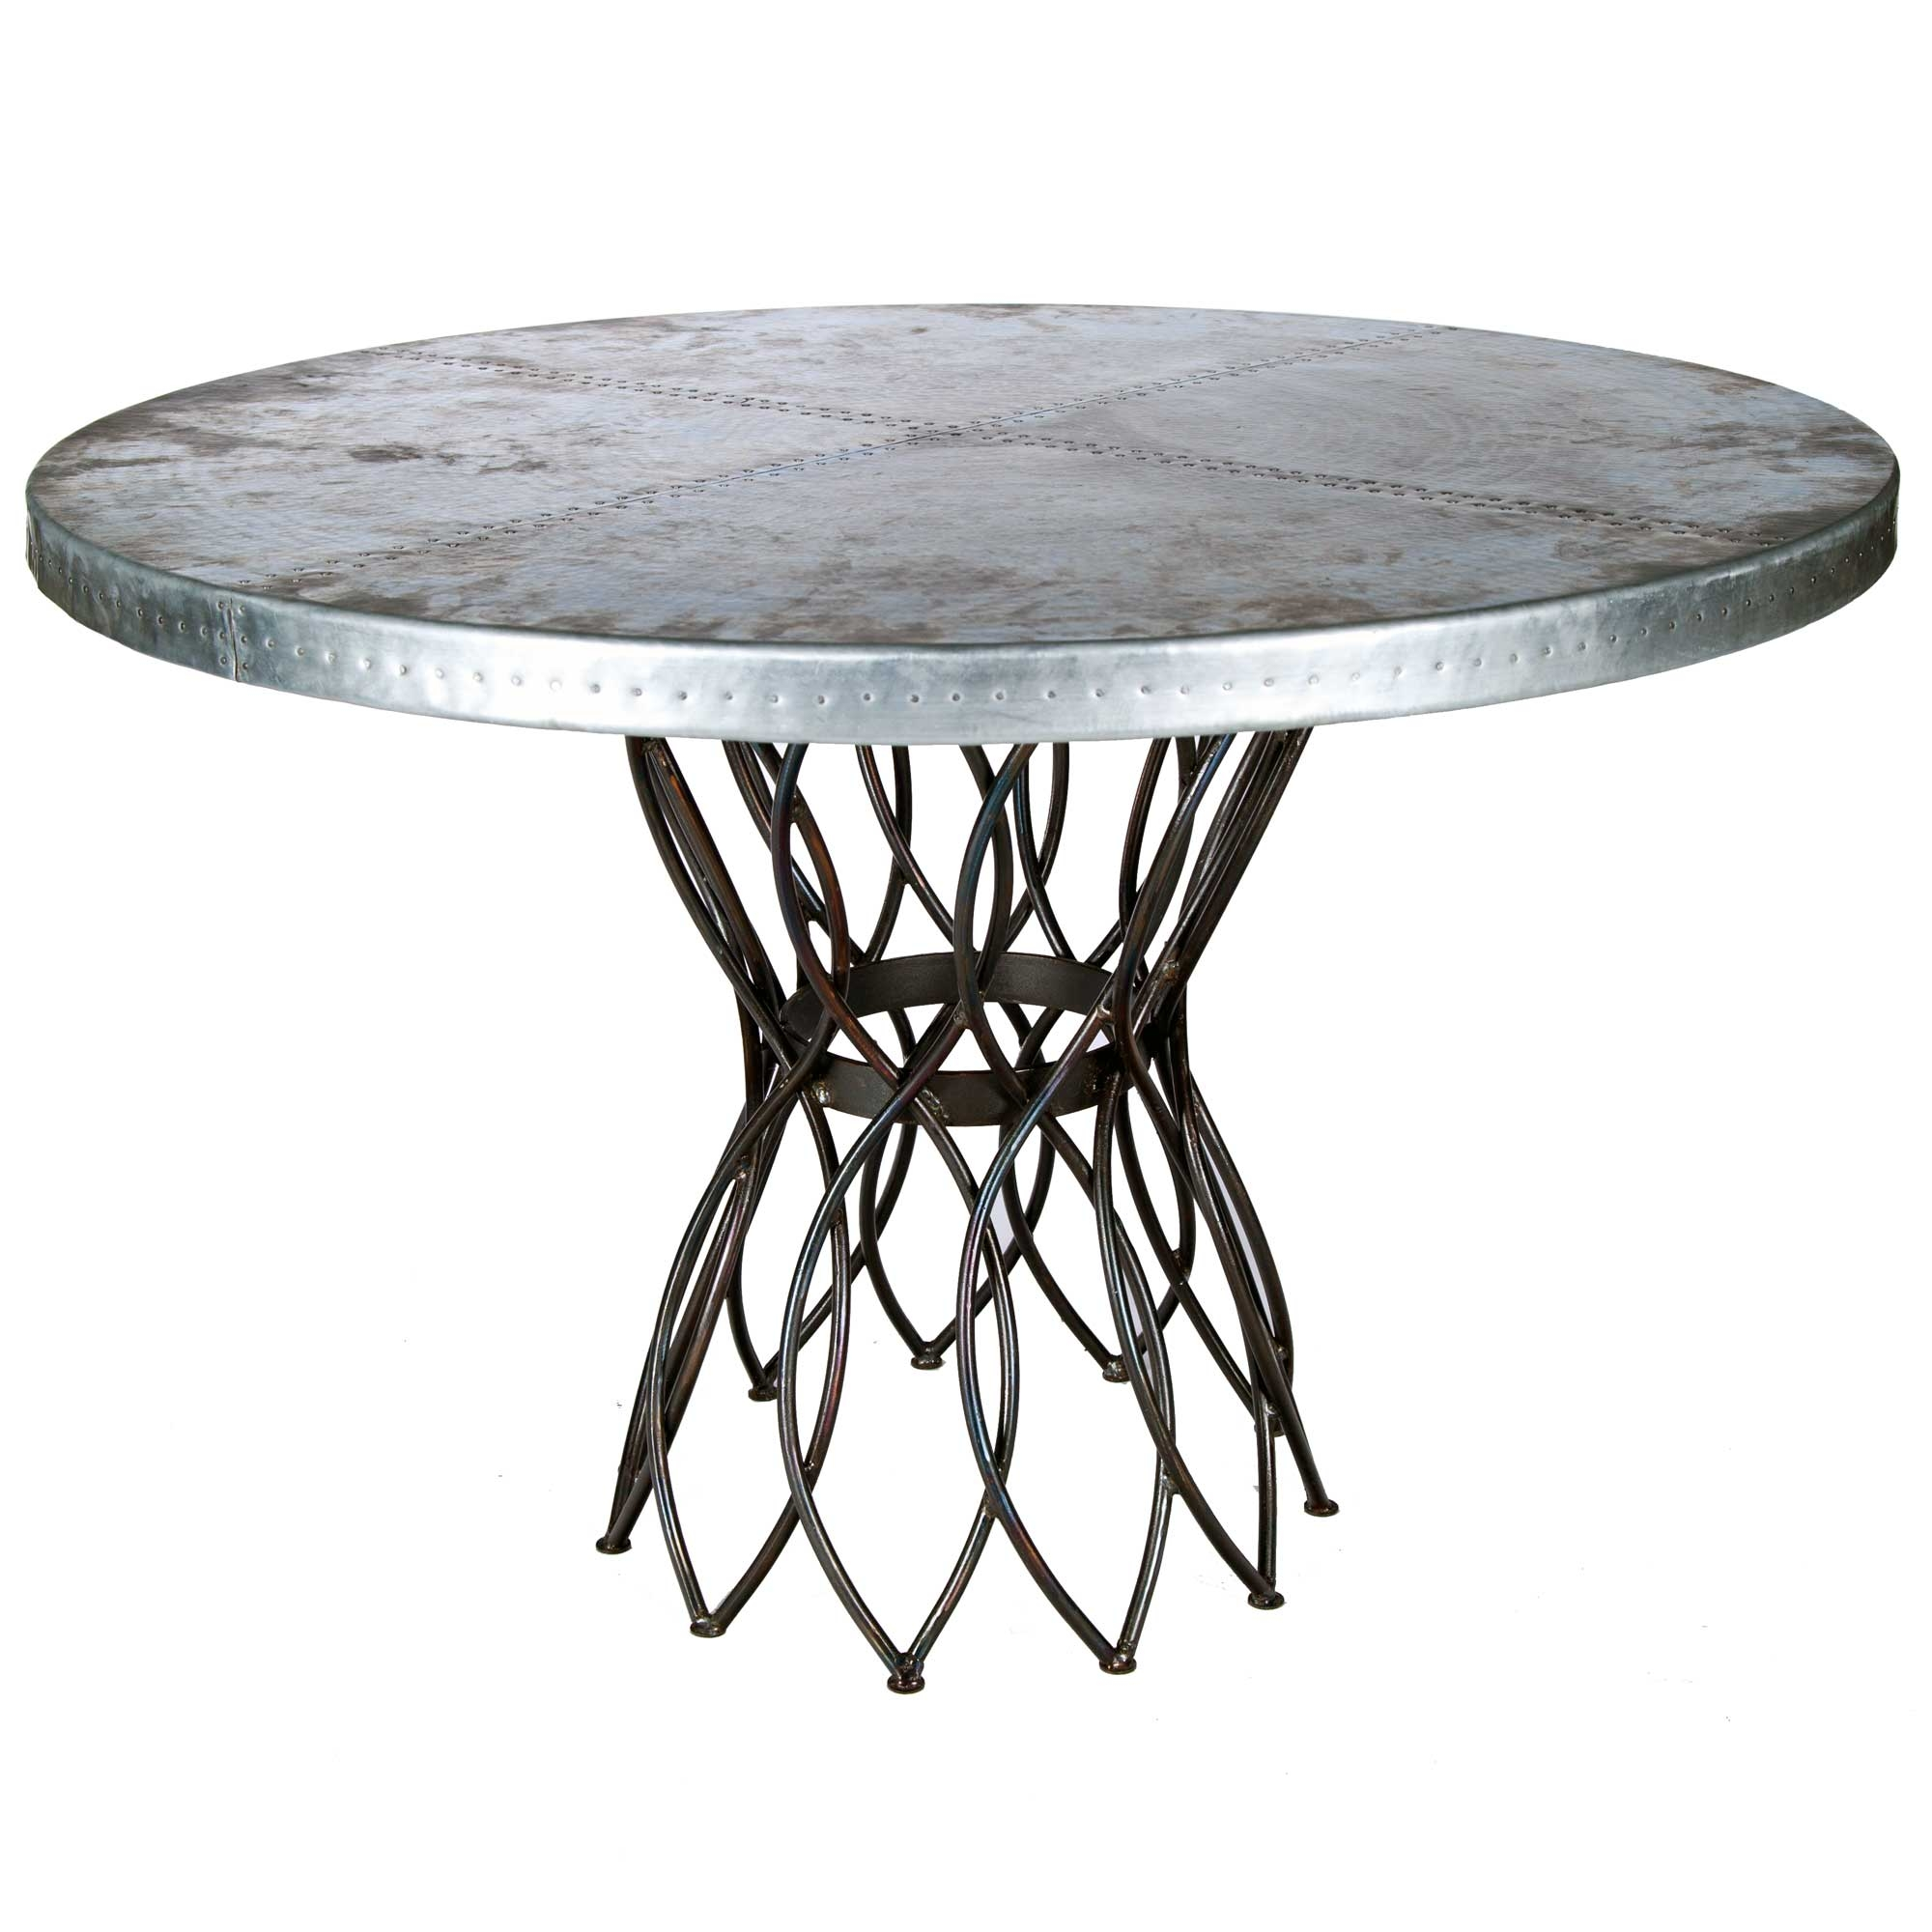 Infinity Iron Dining Table with 48 in Round Hammered Zinc Top : TWI PM 2M5 F 545B 2 from timelesswroughtiron.com size 2000 x 2000 jpeg 587kB